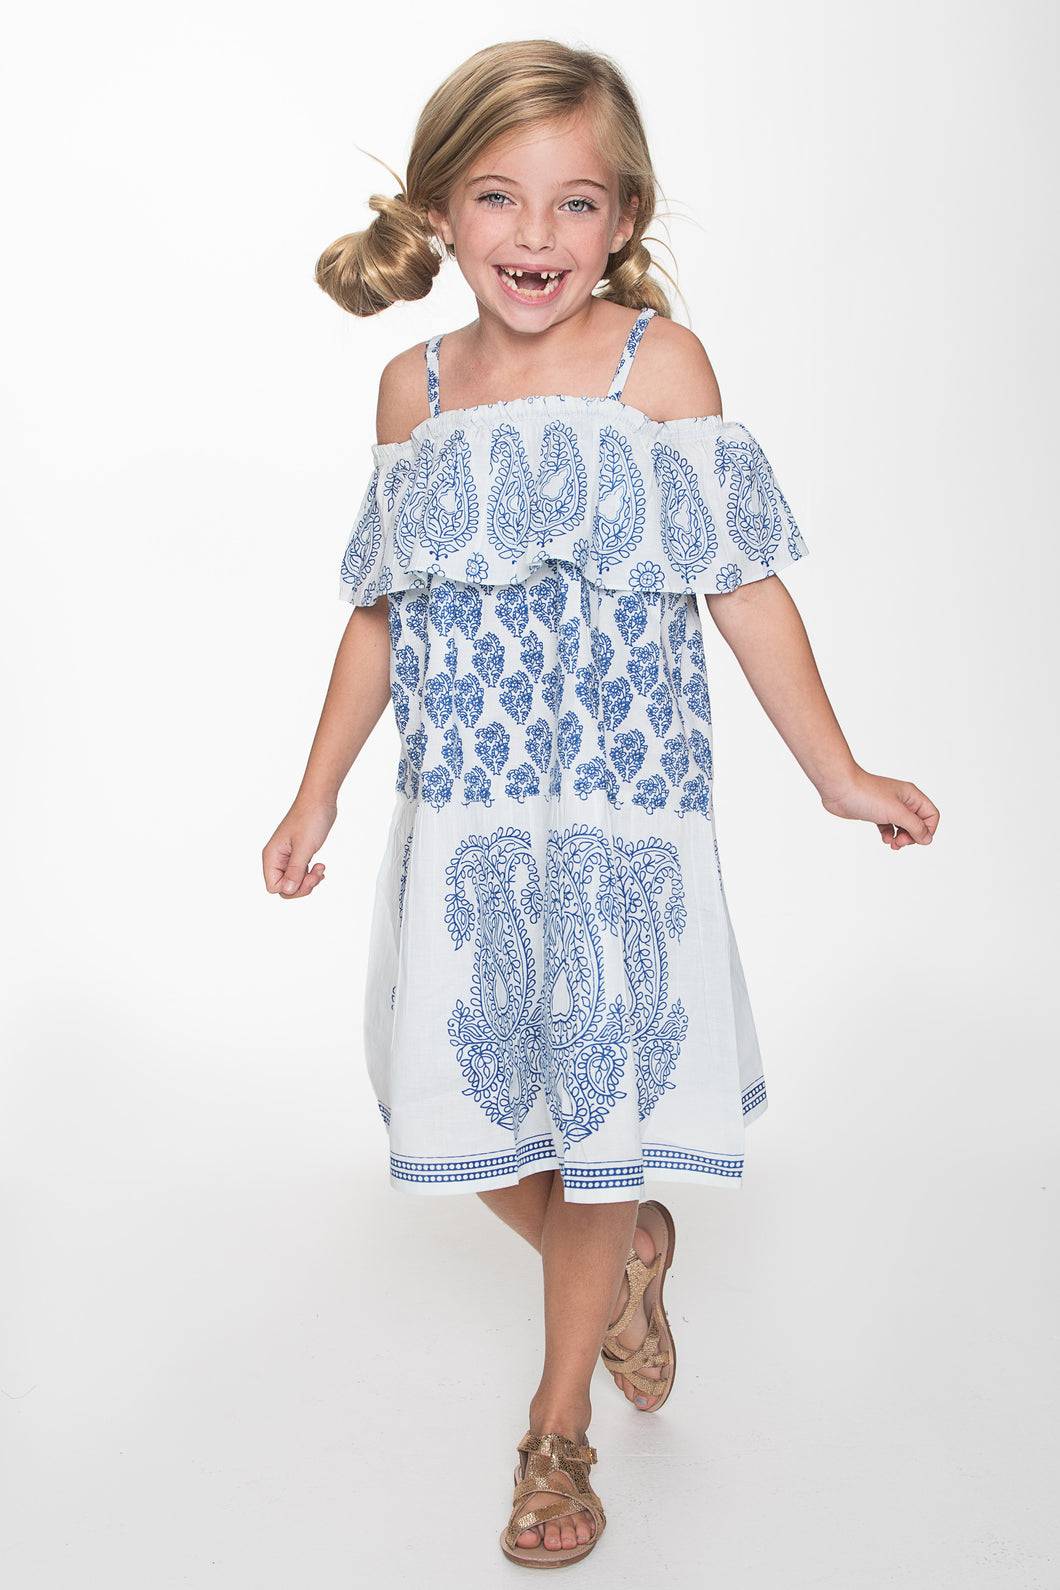 Blue and White Paisley Off-shoulder Dress - Kids Wholesale Boutique Clothing, Shirt-Dress - Girls Dresses, Yo Baby Wholesale - Yo Baby